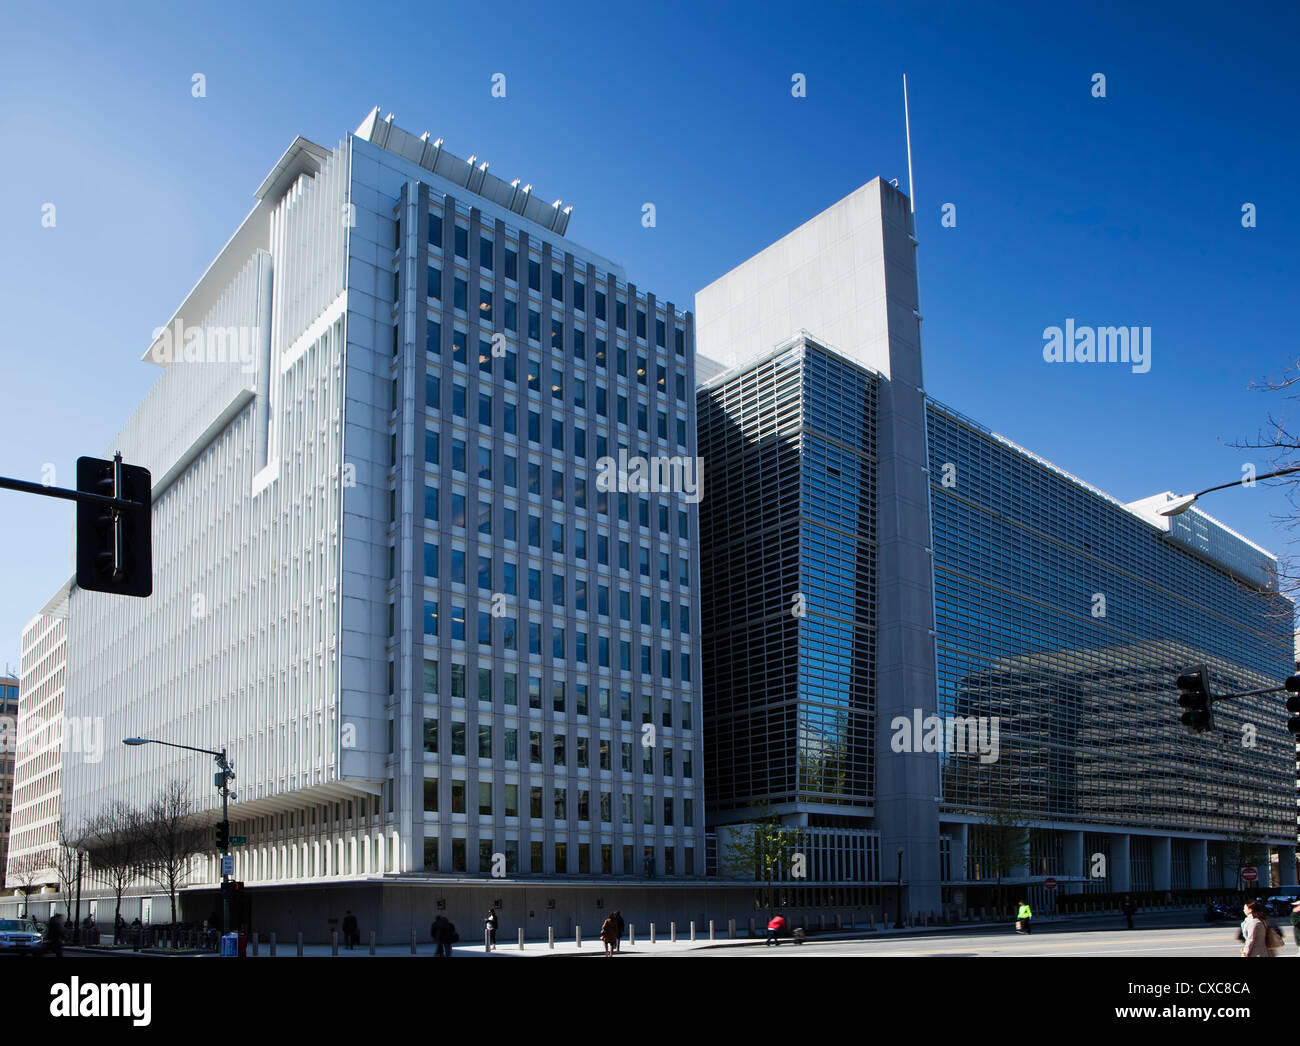 The World Bank Group Building housing the International Bank for Reconstruction and Development, Washington D.C. - Stock Image